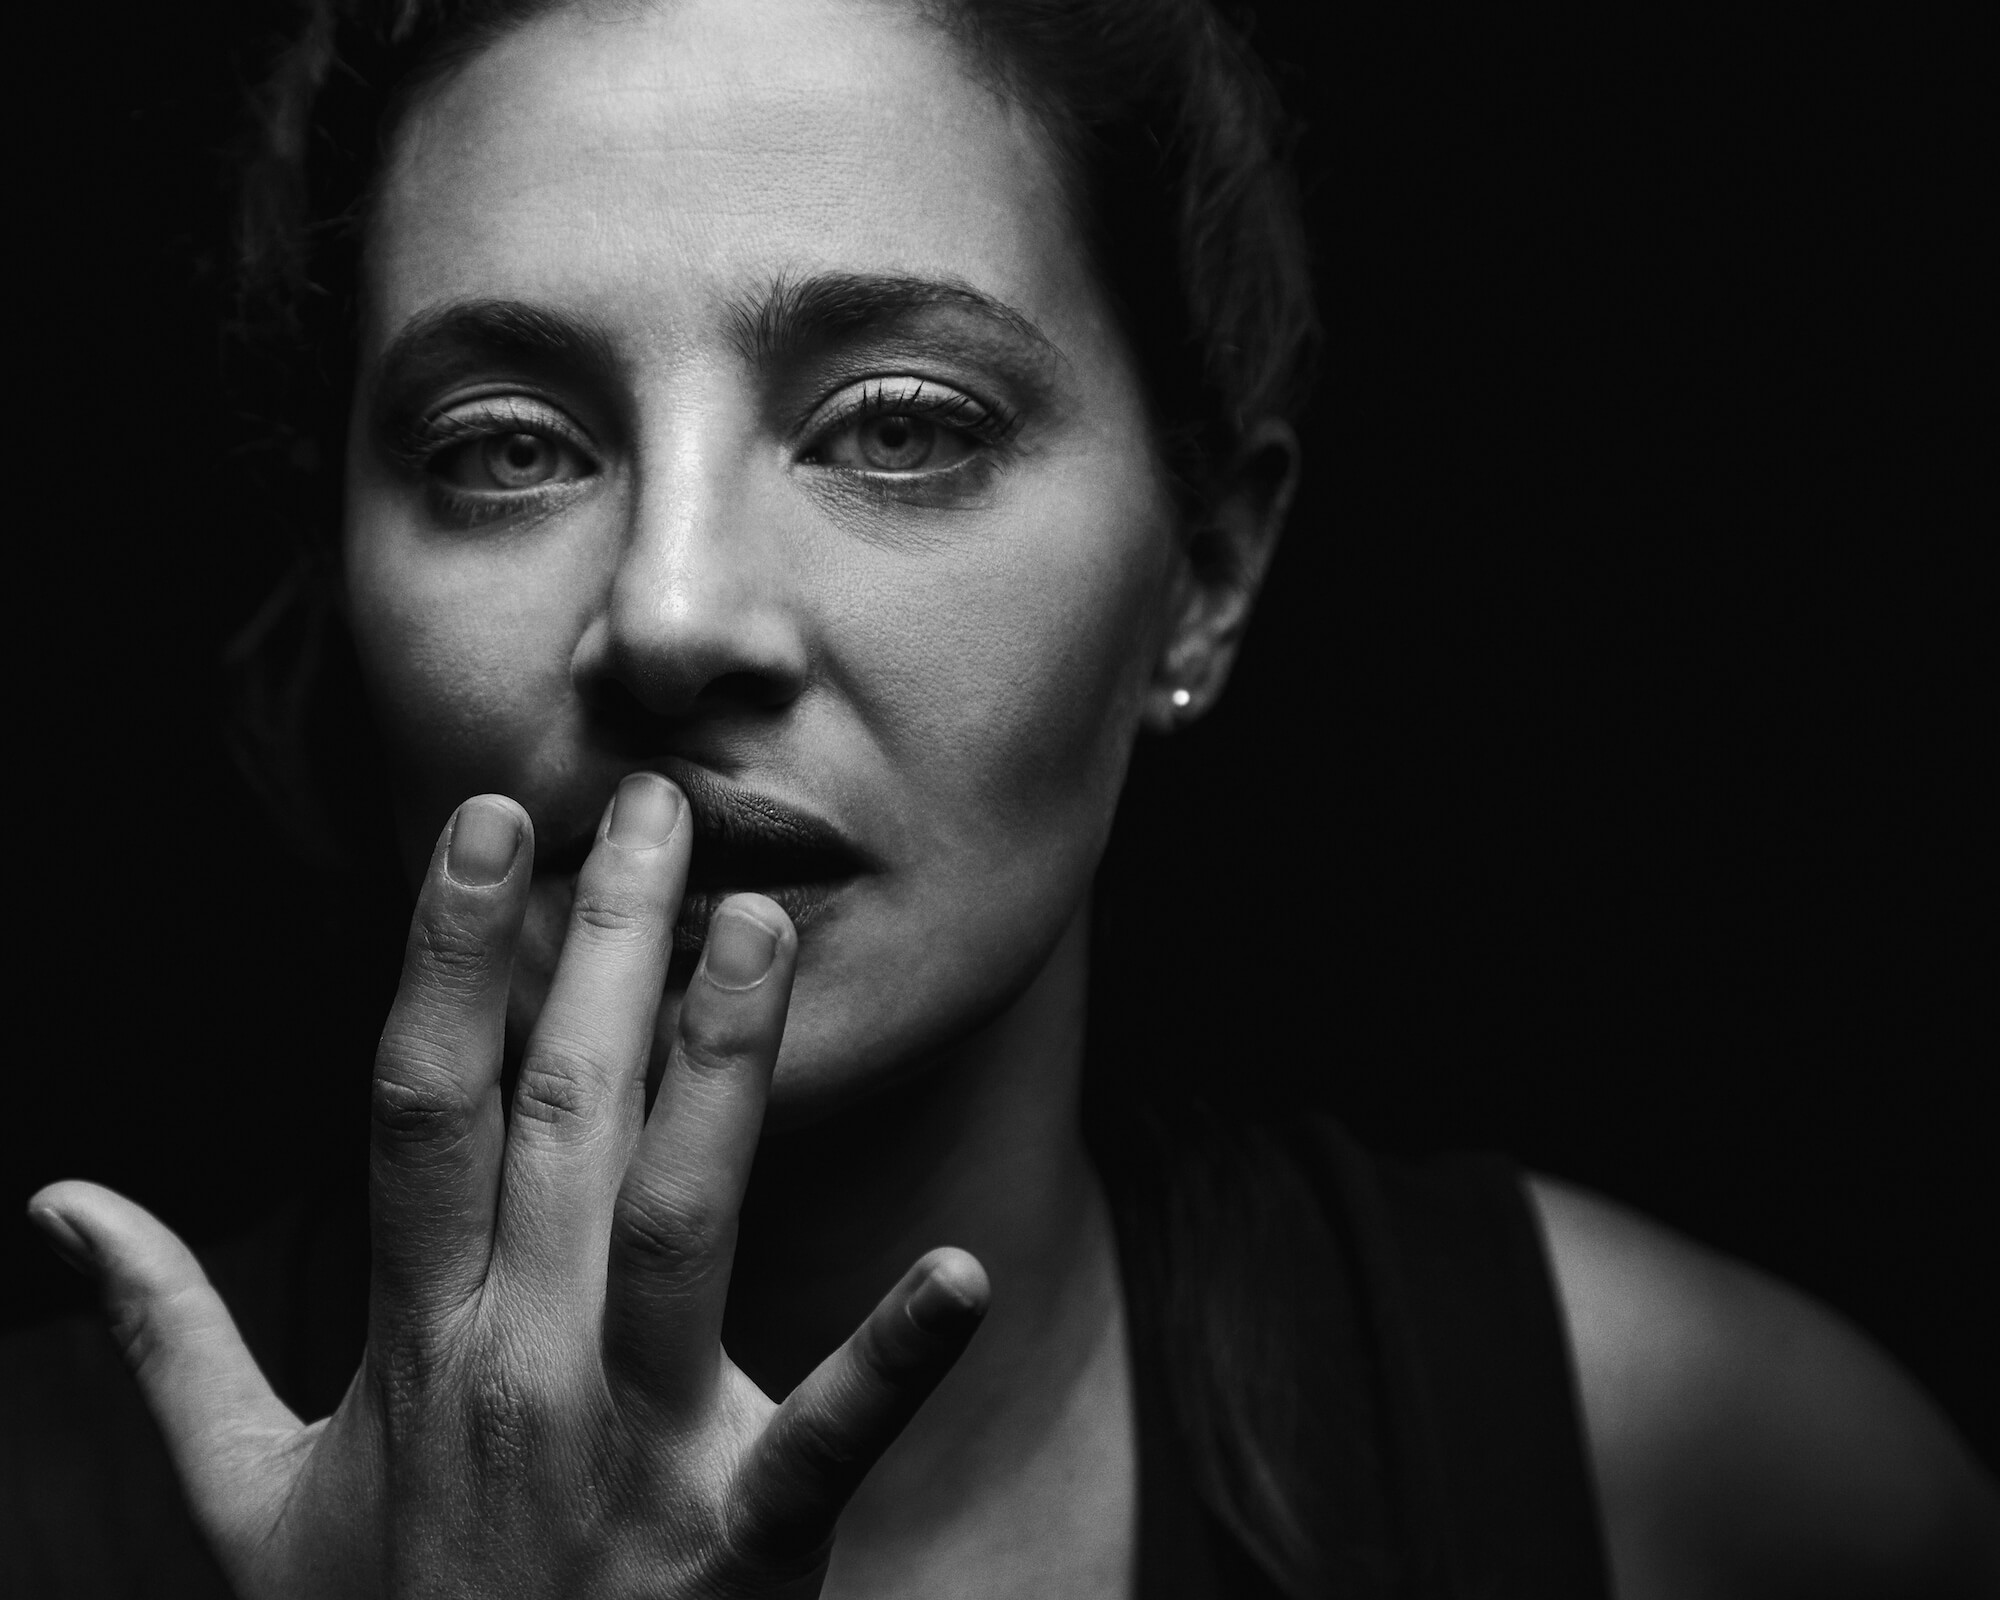 Portrait of Annalisa, black and white, high contrast photo of the model touching her lip. Winning photo of the Beazy December Contest.